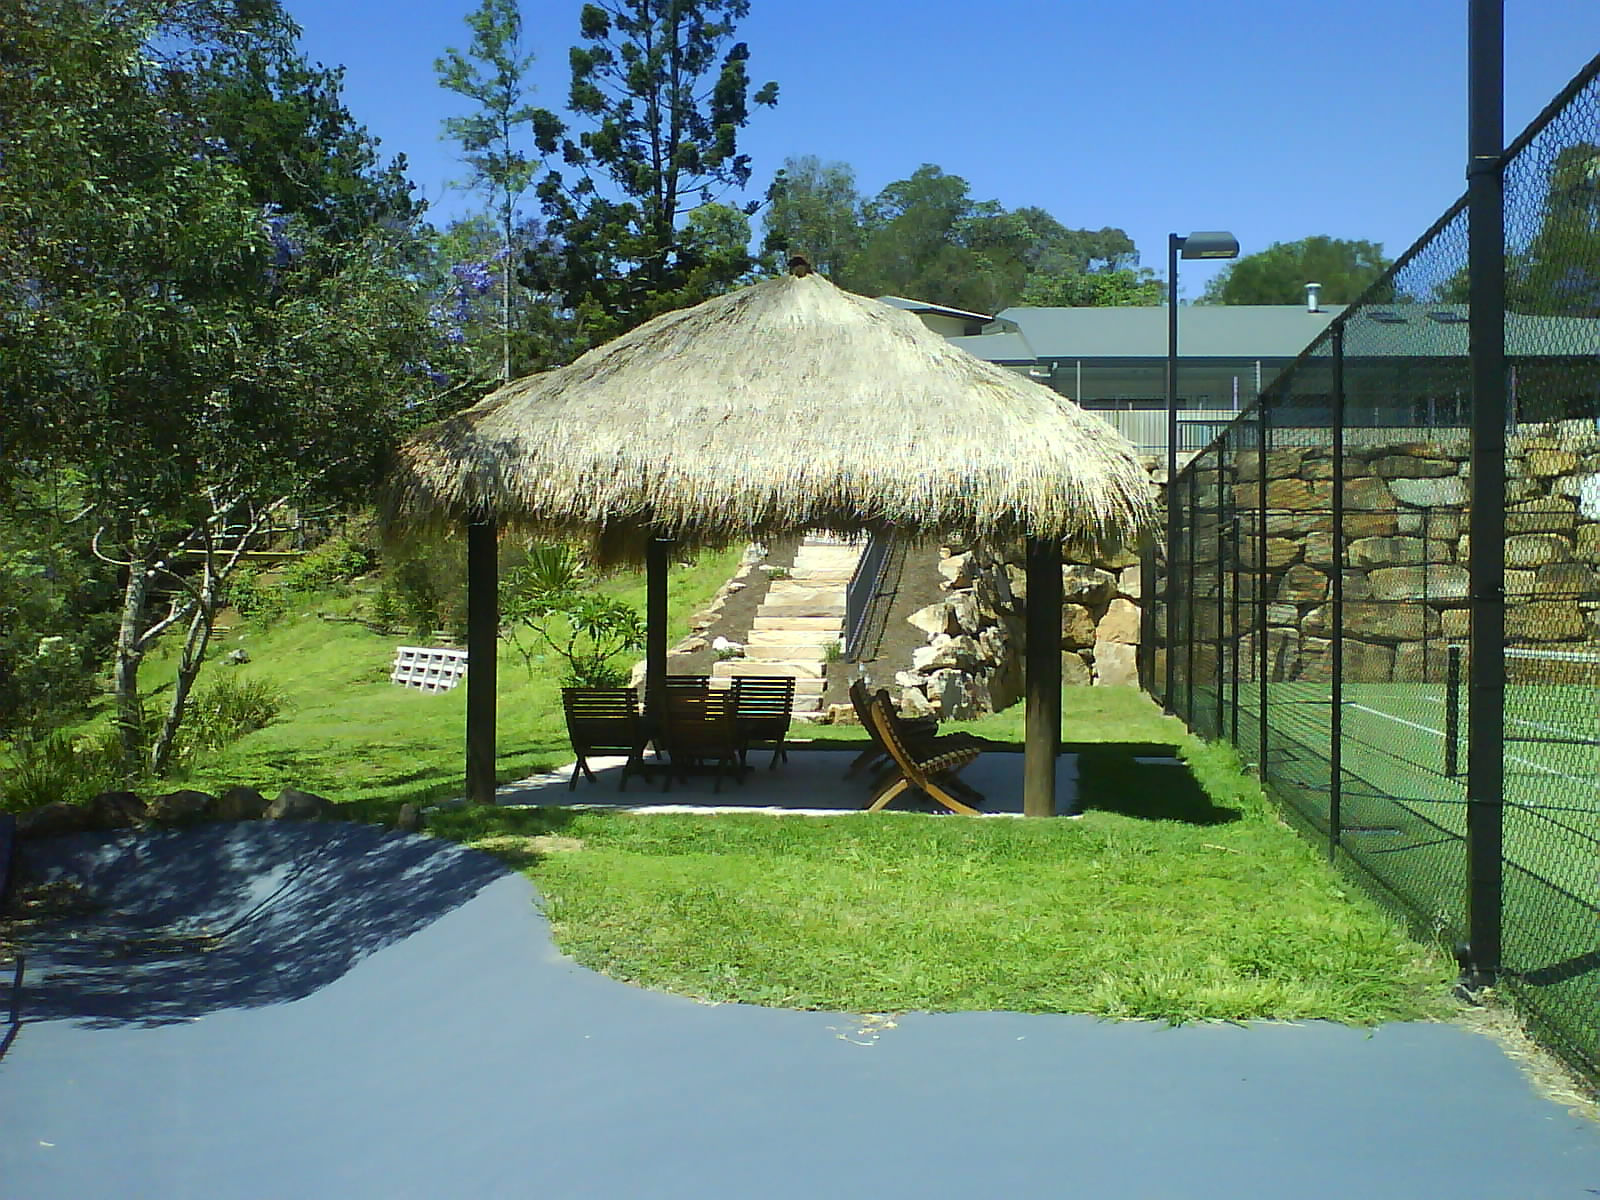 Tennis courts roofs - Bali huts